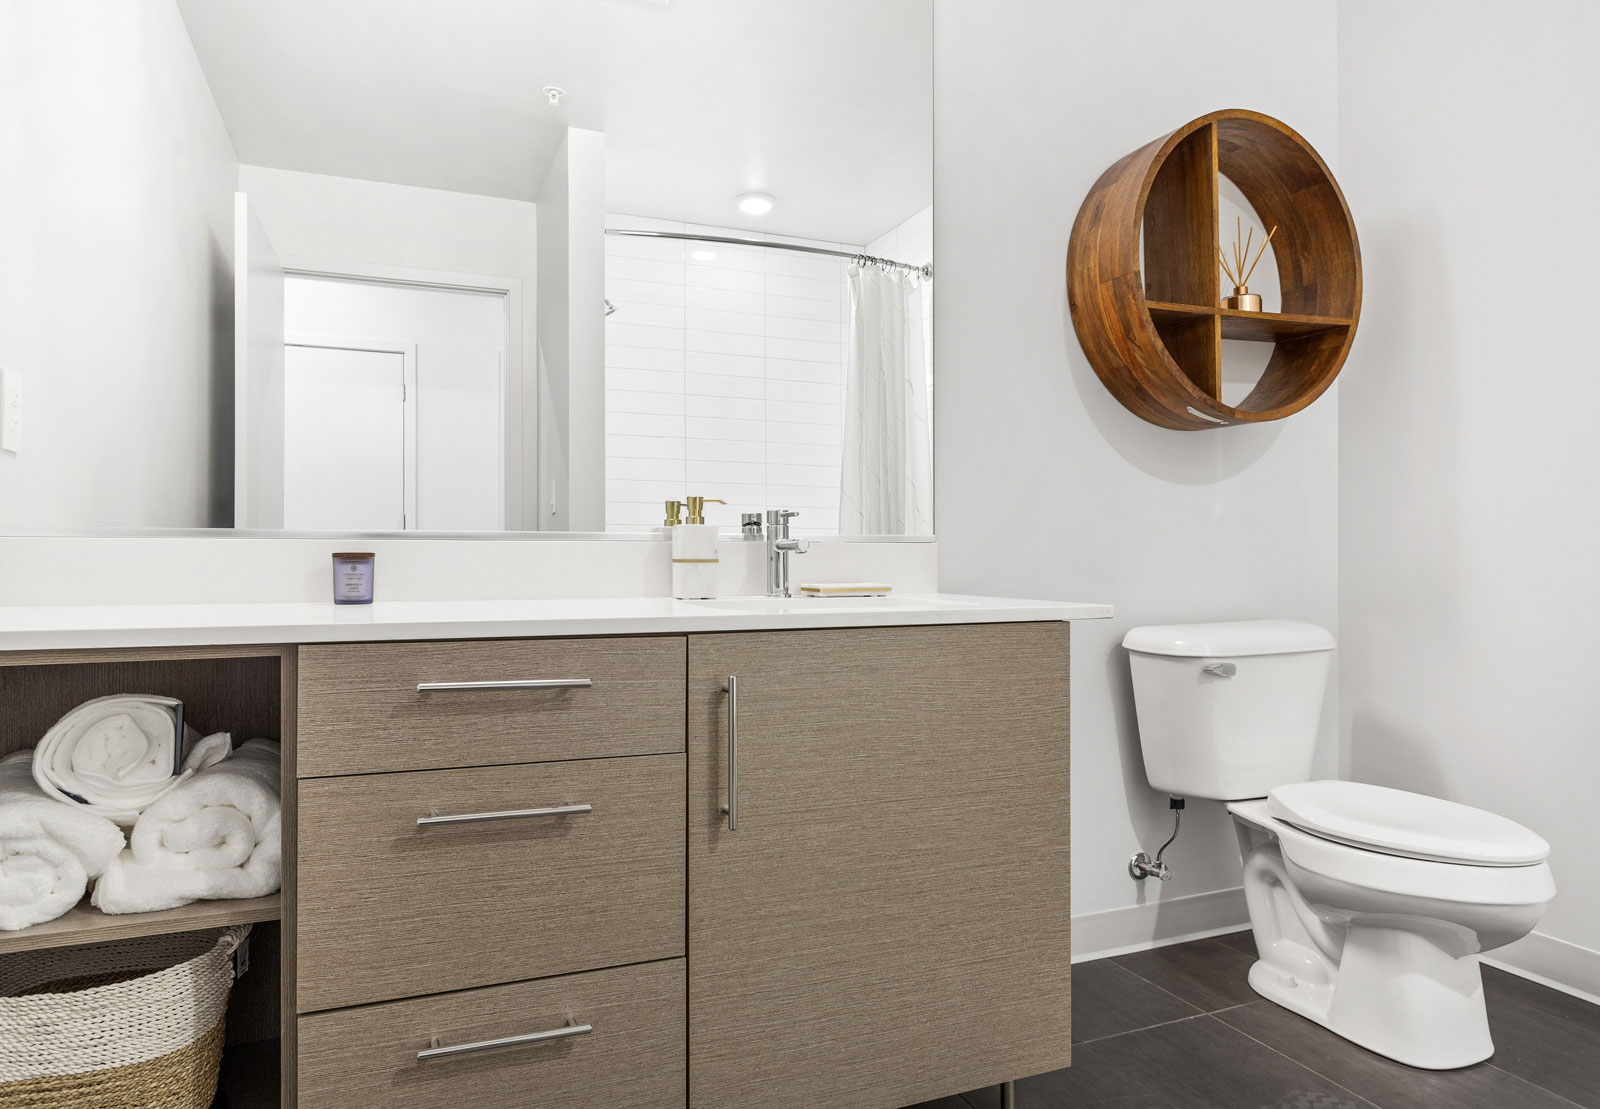 Upshore bathroom with white single sink counter, light brown cabinets, dark grey floor tiles